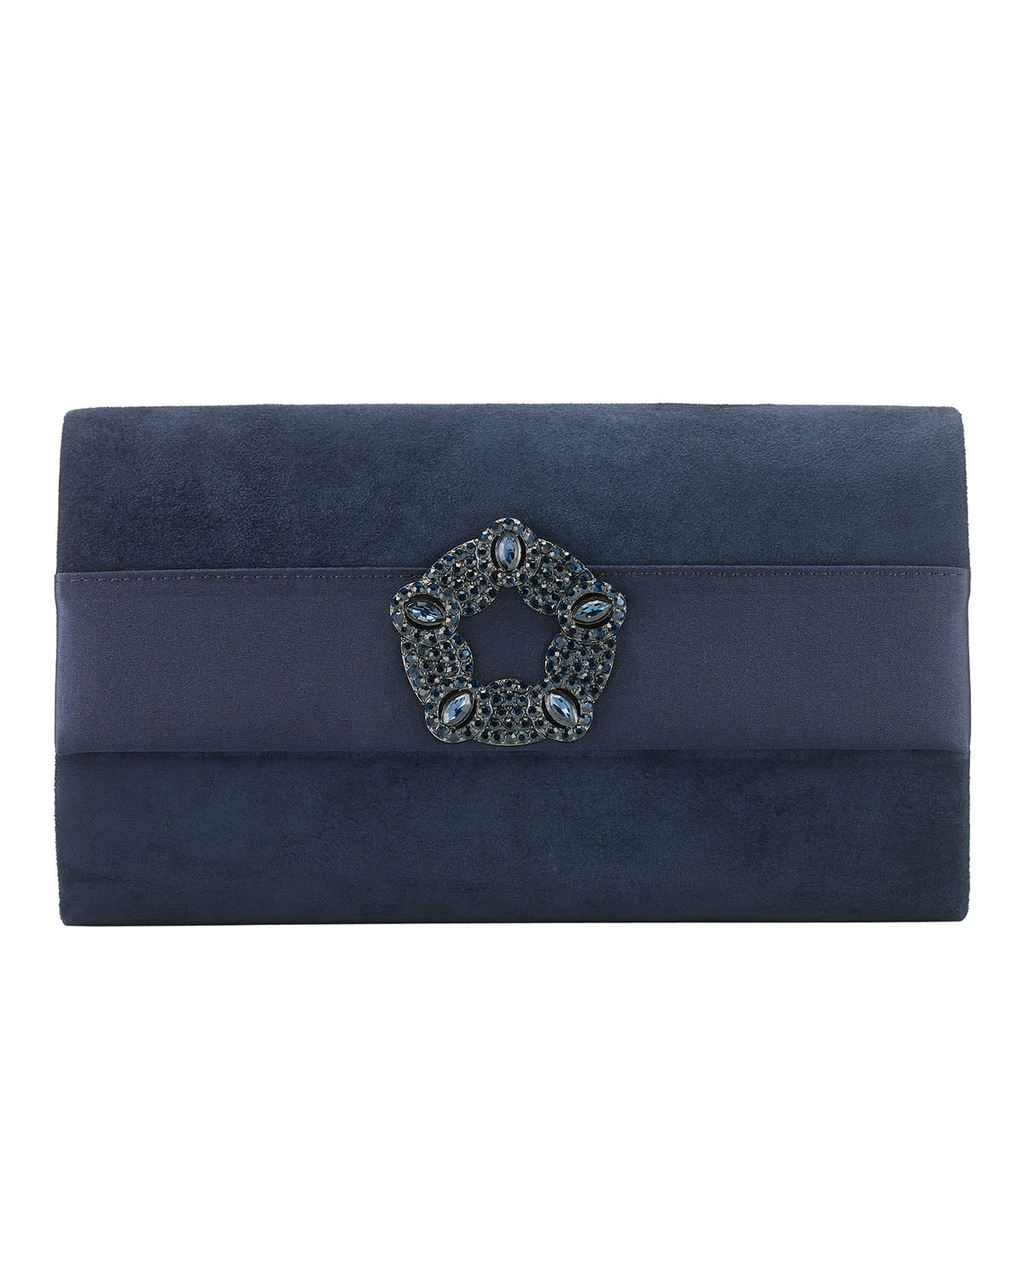 Georgie Suede Clutch - predominant colour: navy; occasions: evening, occasion; type of pattern: standard; style: clutch; length: hand carry; size: small; material: suede; pattern: plain; finish: plain; season: s/s 2016